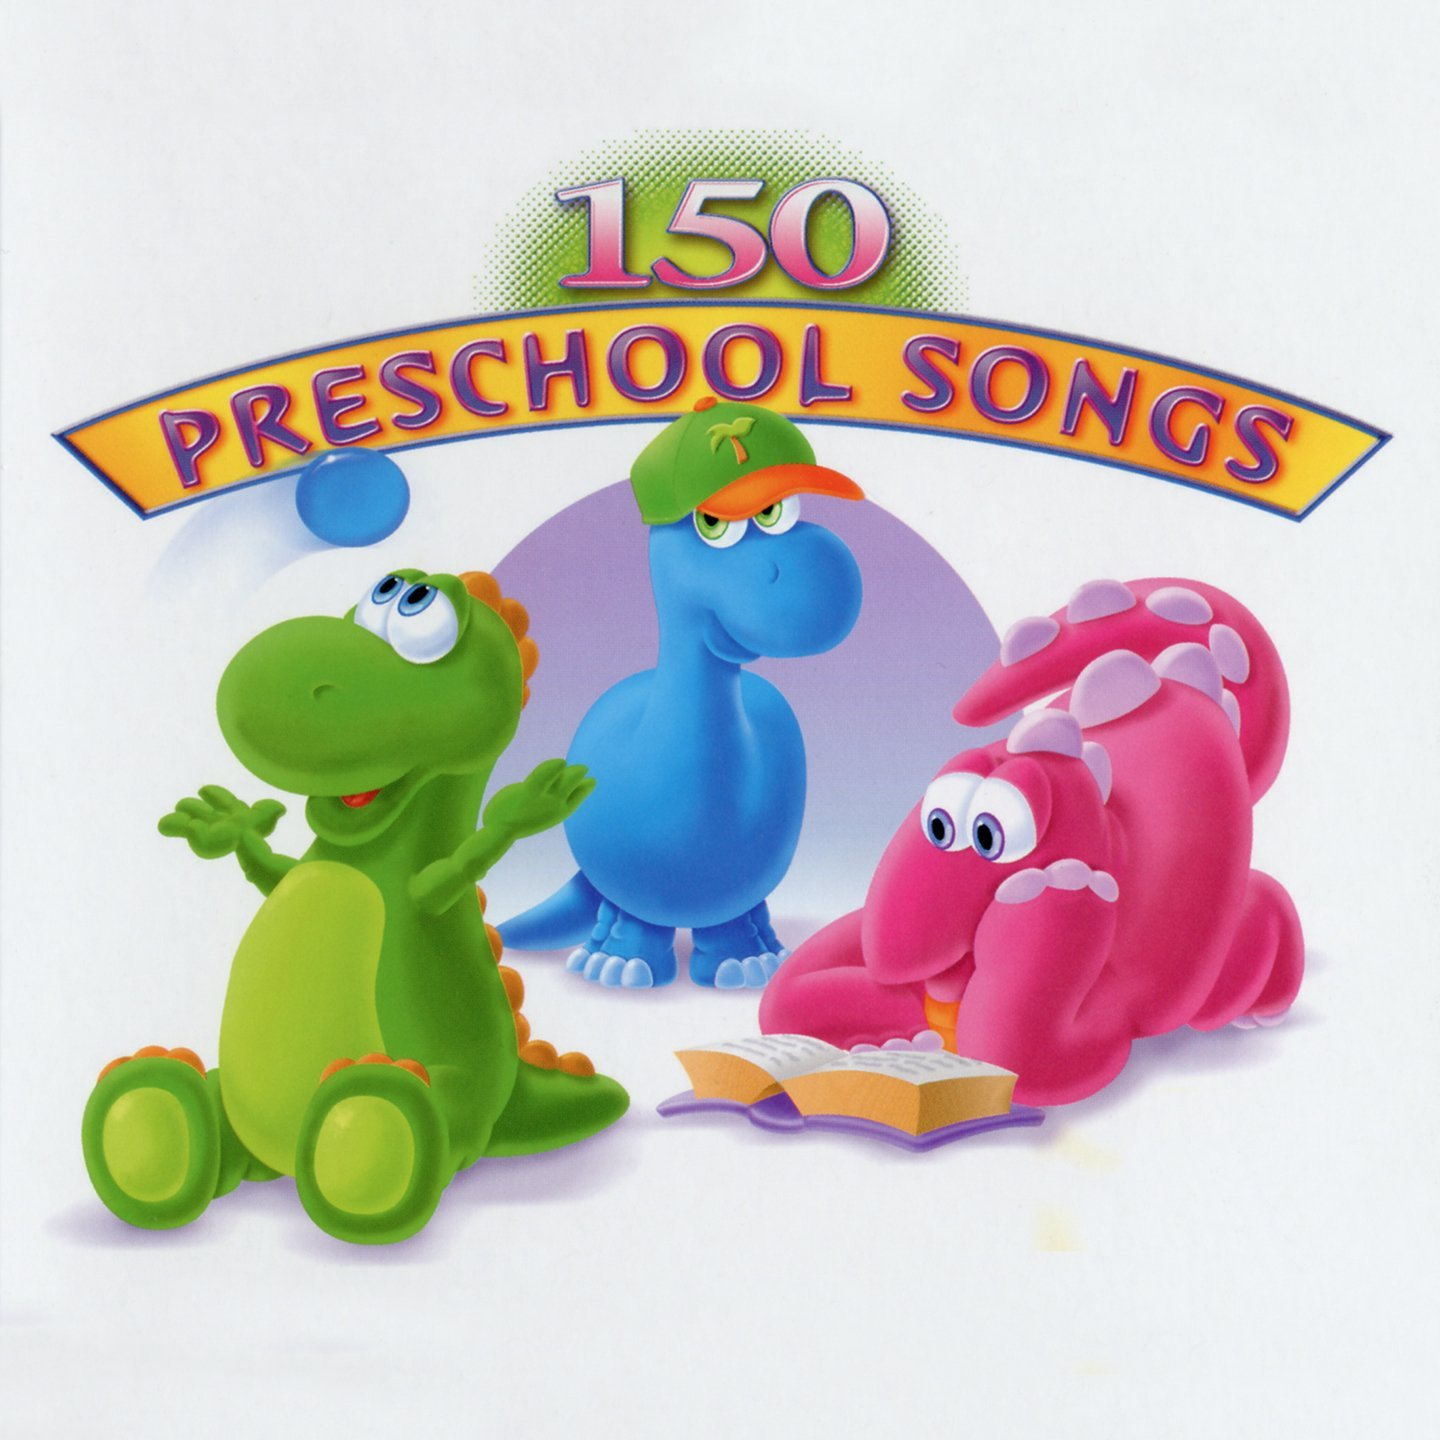 150 Preschool Songs (Digipak)